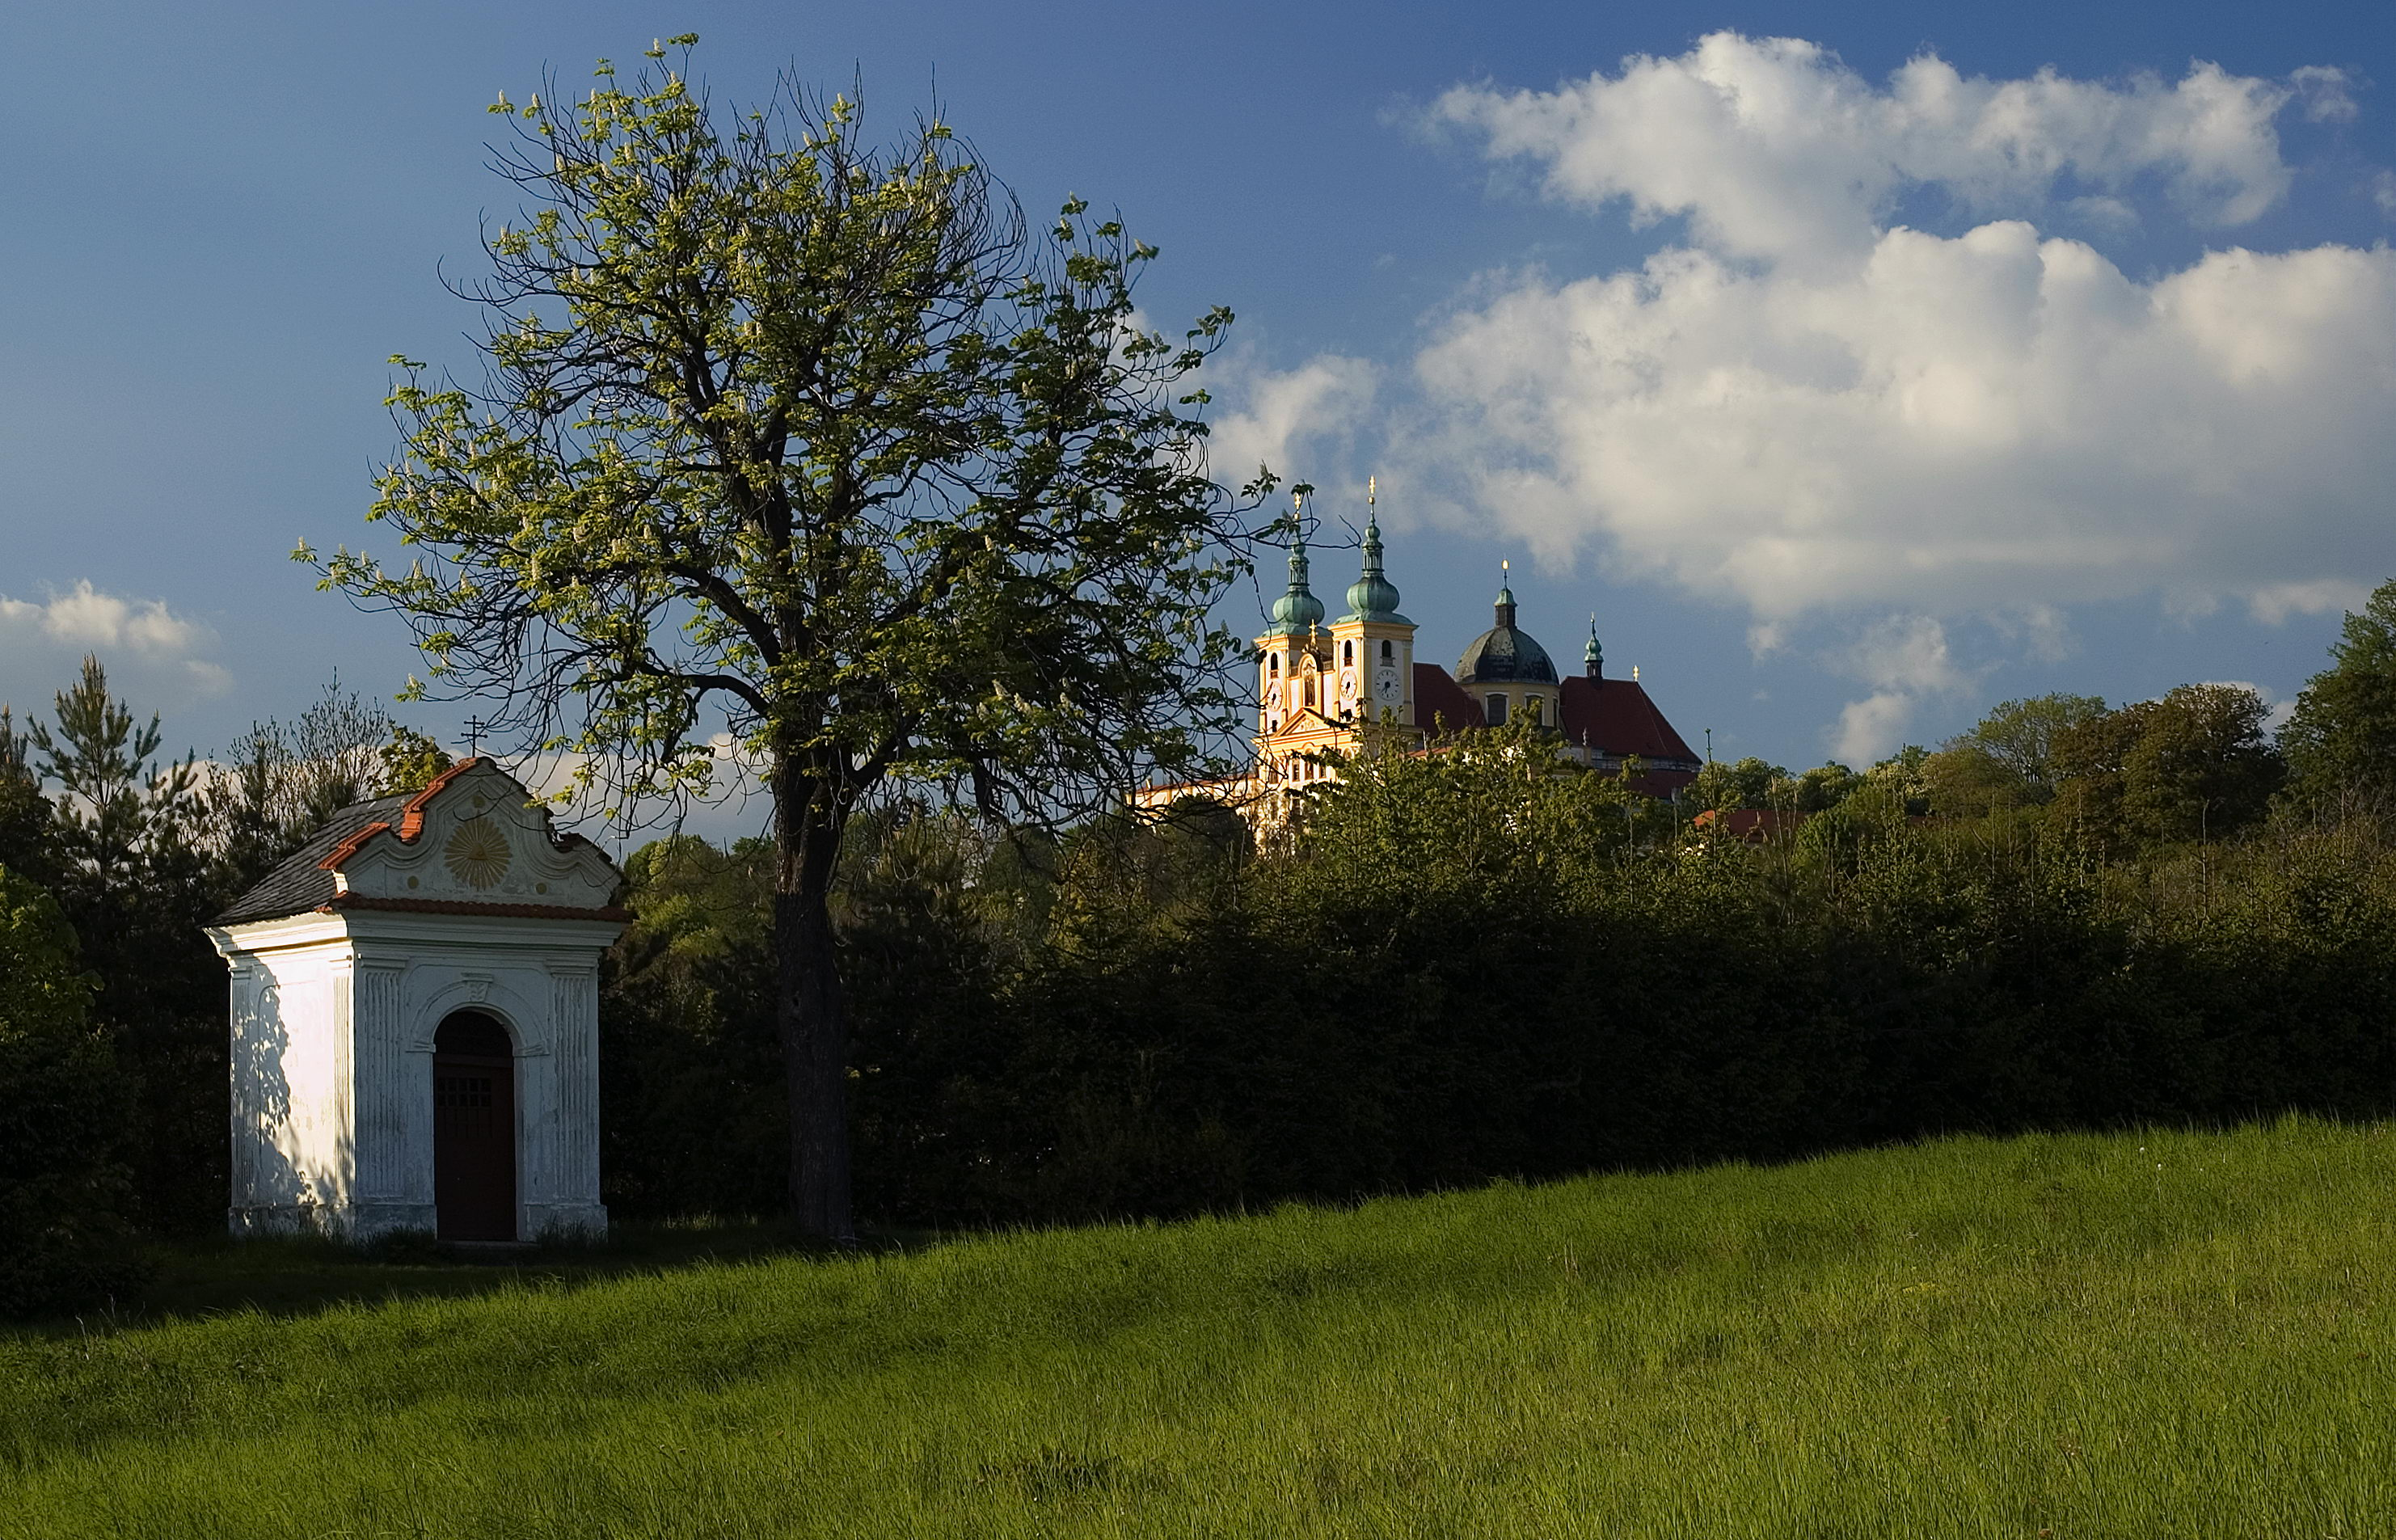 The Holy Hill near Olomouc